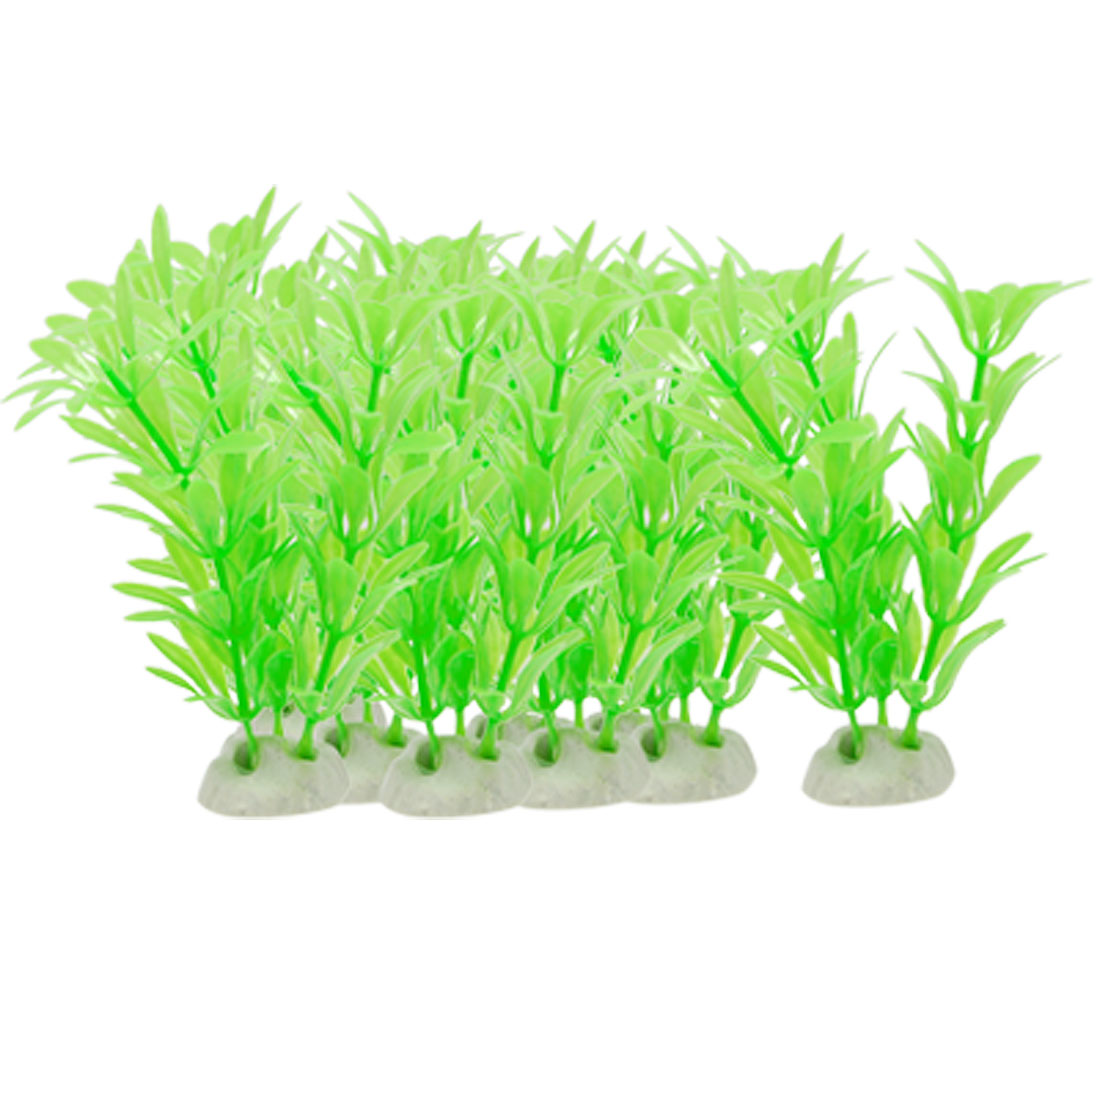 10 Pcs Plastic Green Aquatic Plants Aquarium Tank Decor